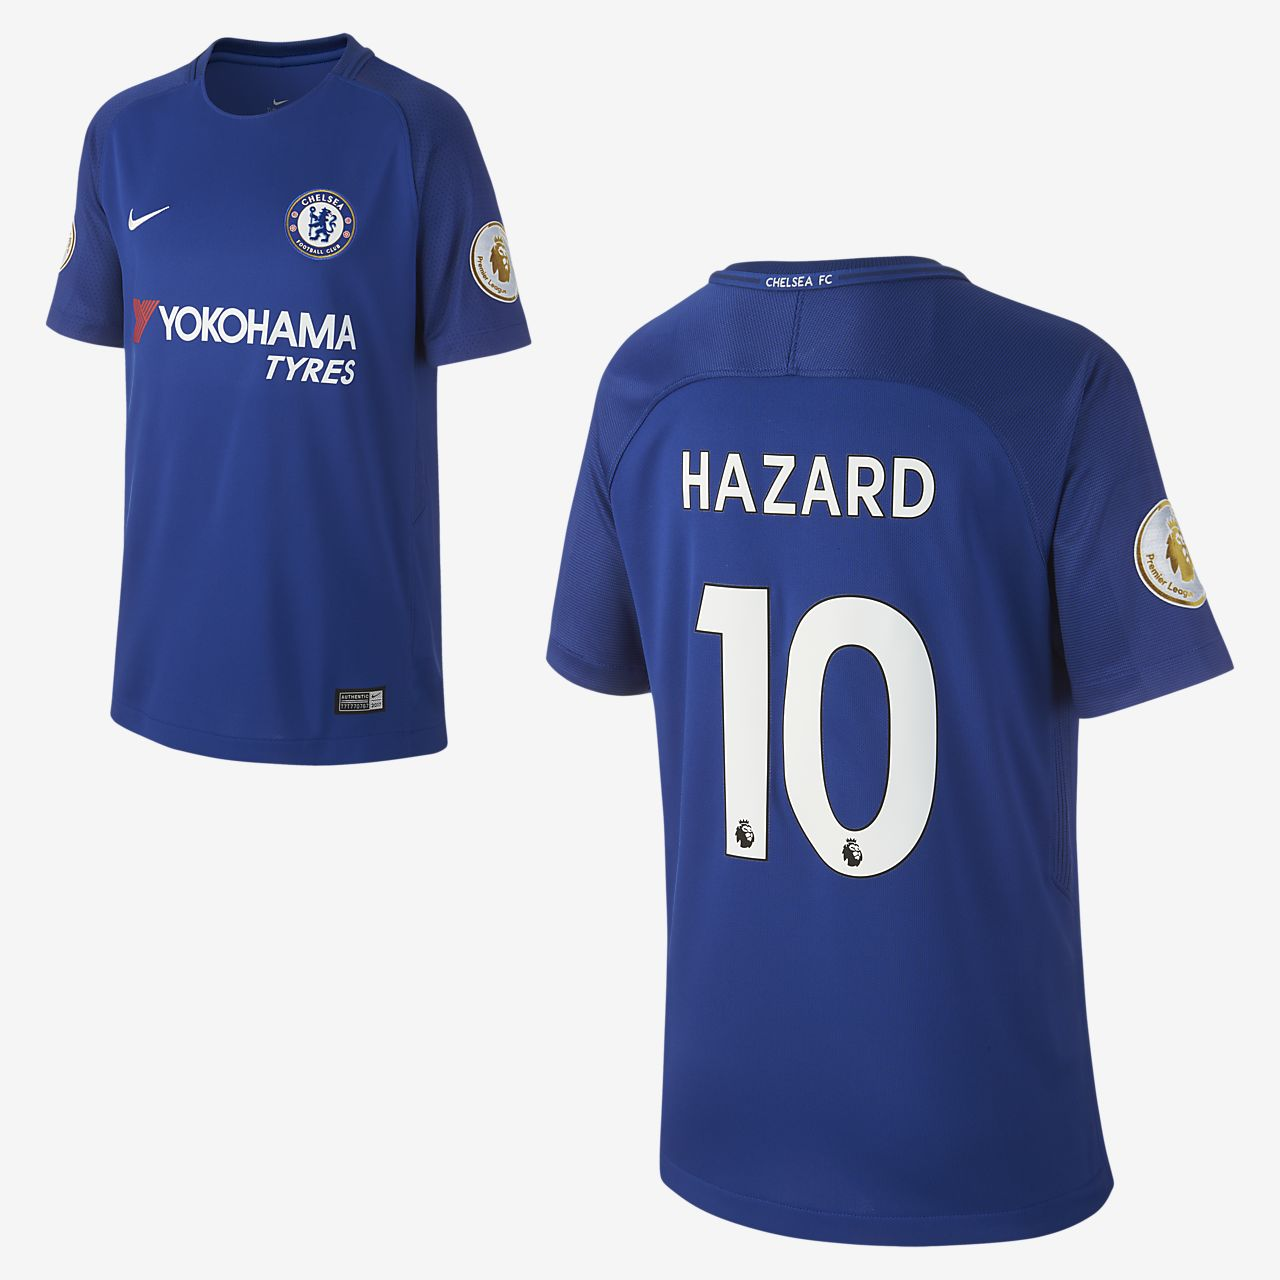 2017/18 Chelsea FC Stadium Home (Eden Hazard) fotballdrakt for store barn